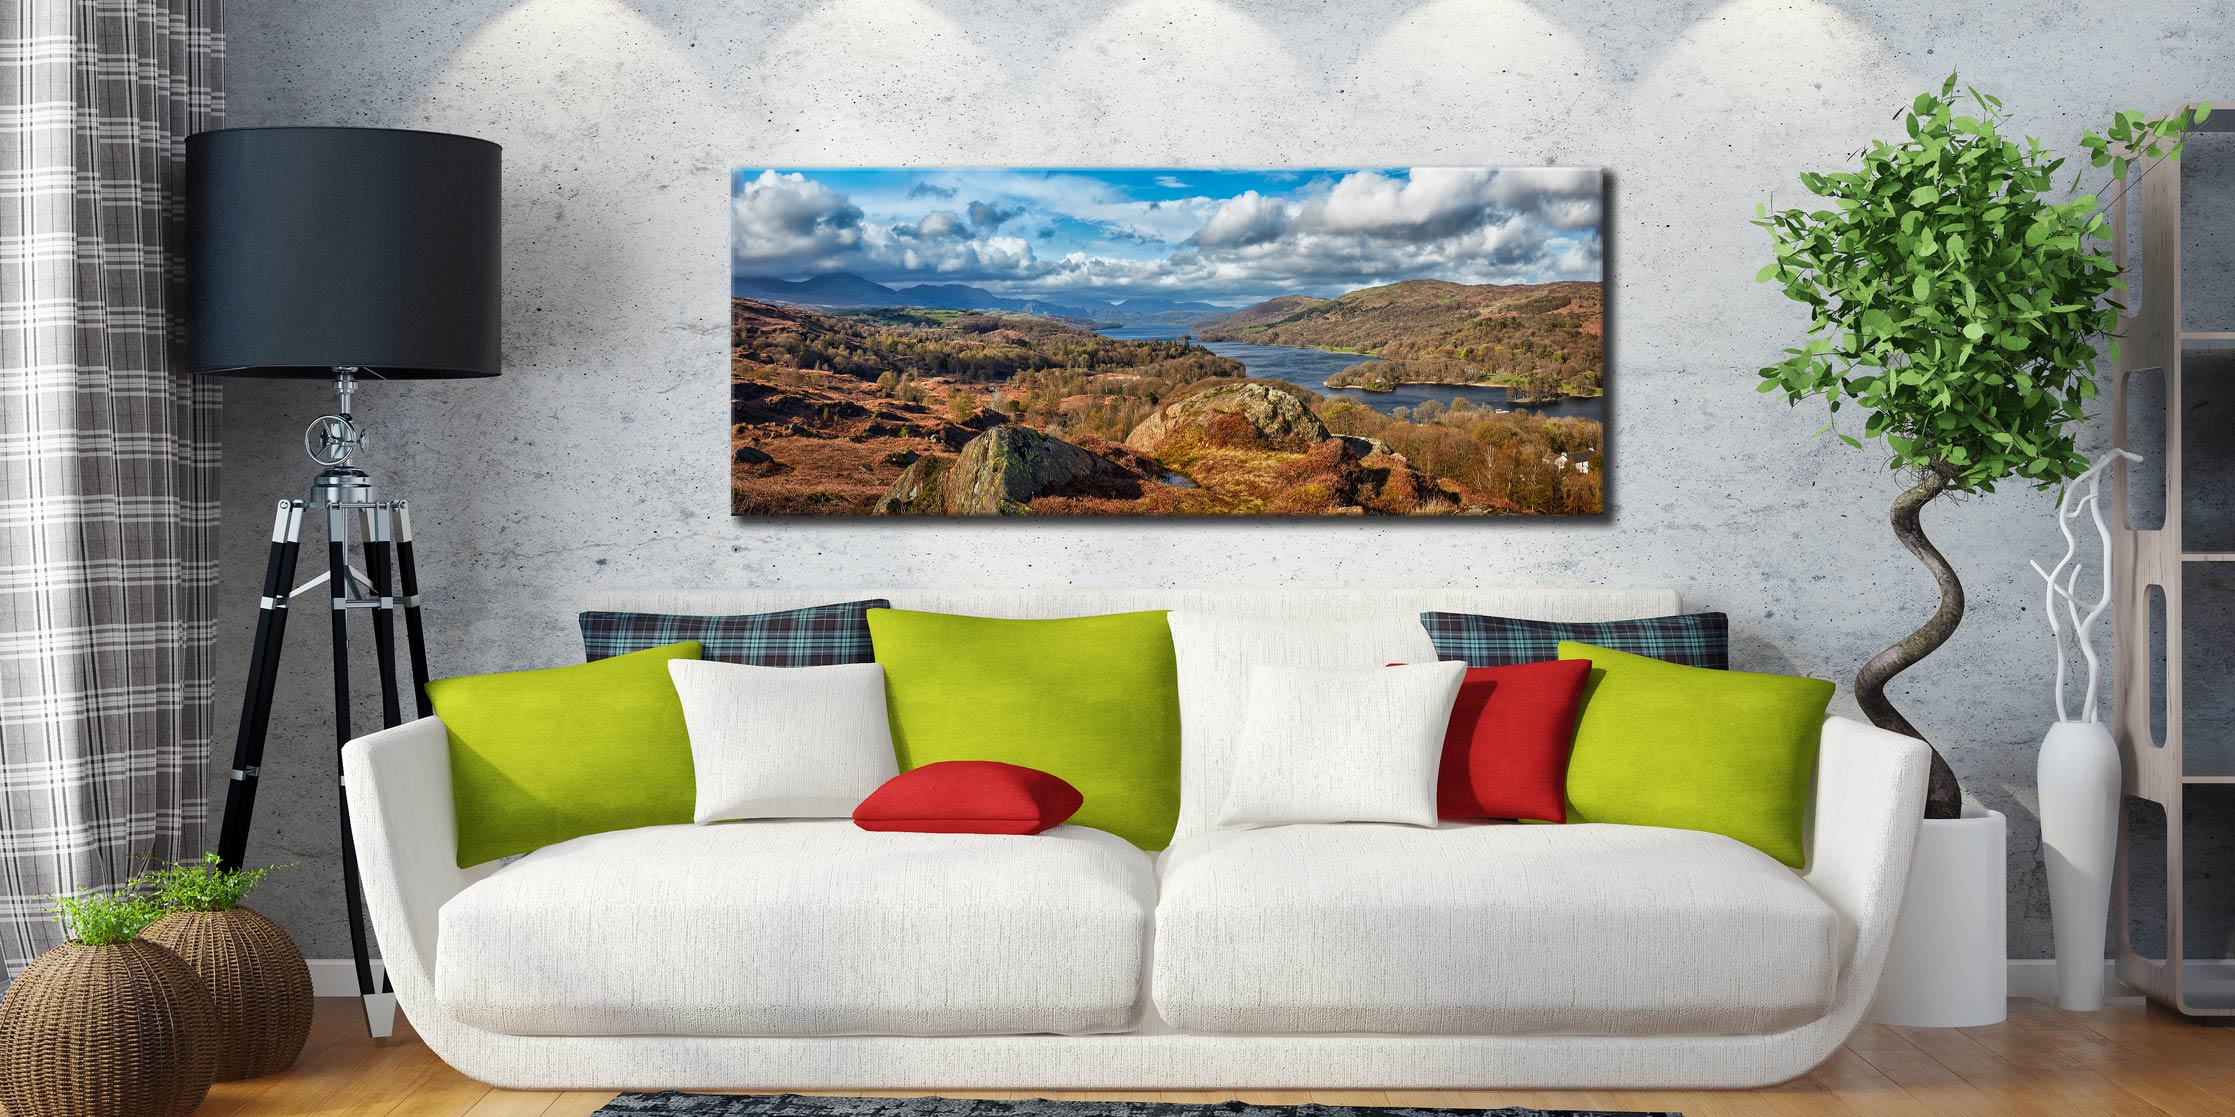 Stunning Coniston Water Panorama Canvas Print On Wall Coniston Water Panorama Lake District Canvas Prints Panoramic Canvas Prints Online Uk Panoramic Canvas Prints Nz photos Panoramic Canvas Prints